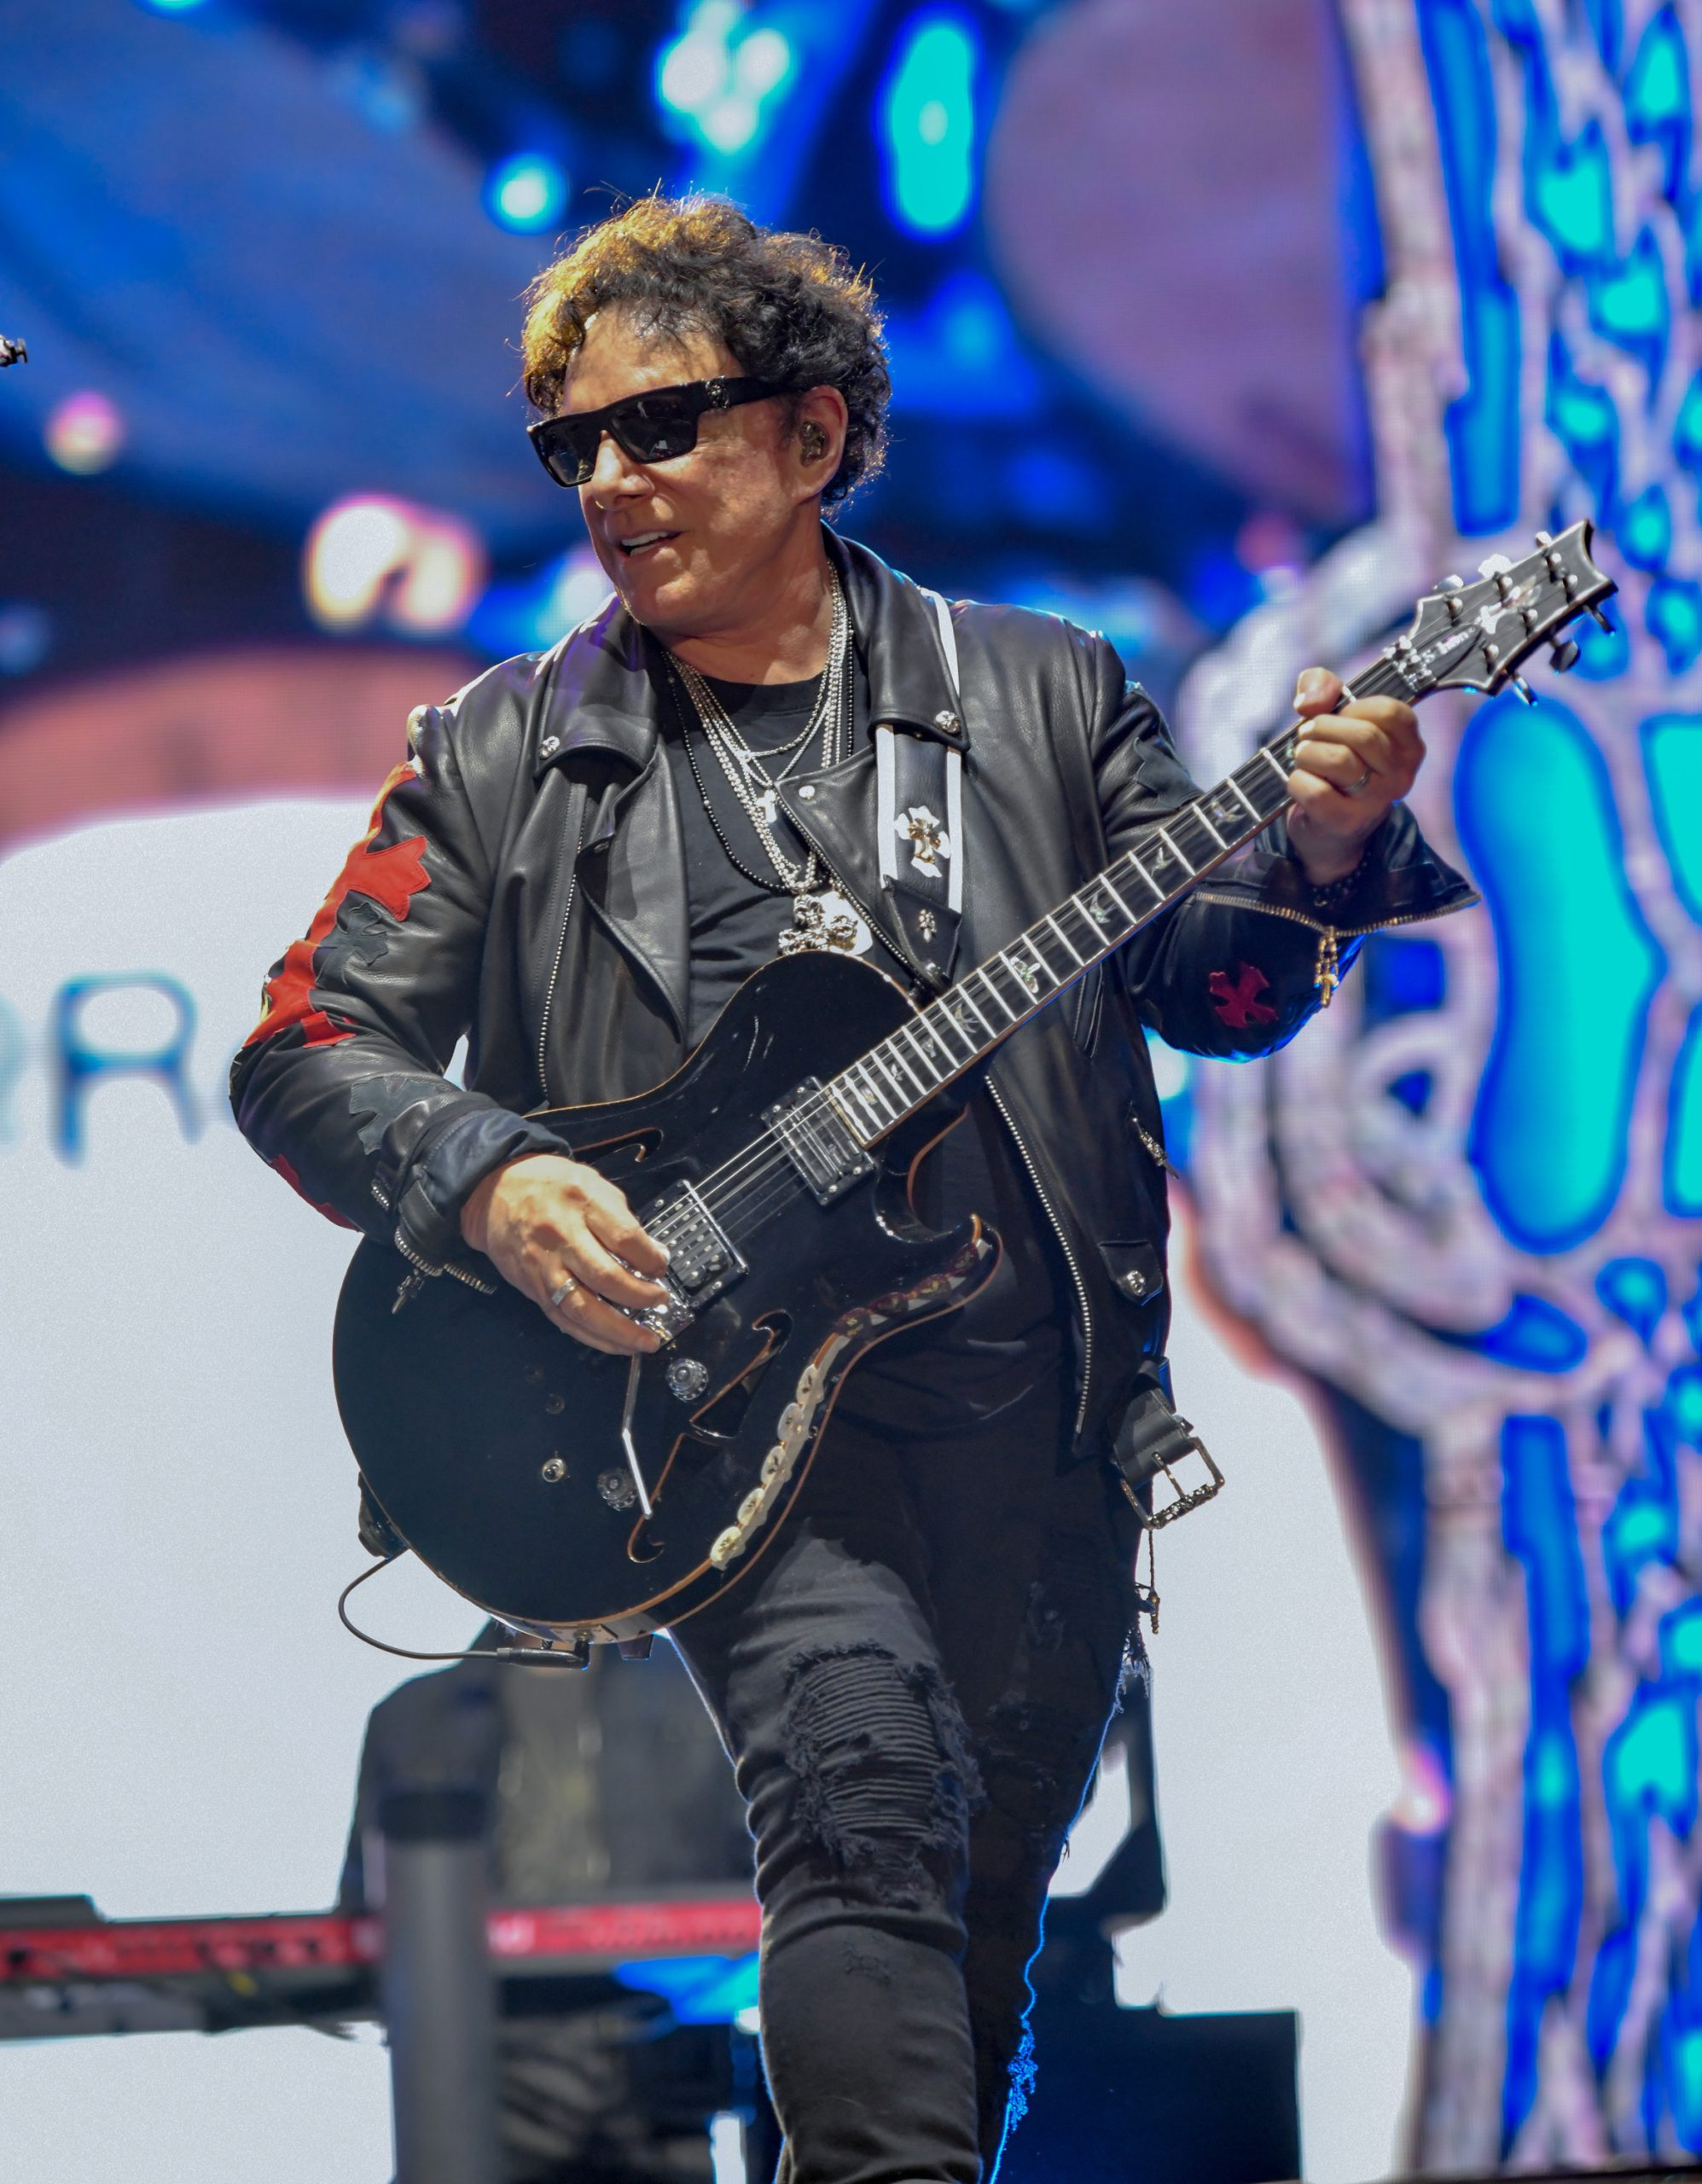 Journey Top Off A Day Of Exceptional Talent At Lollapalooza 18